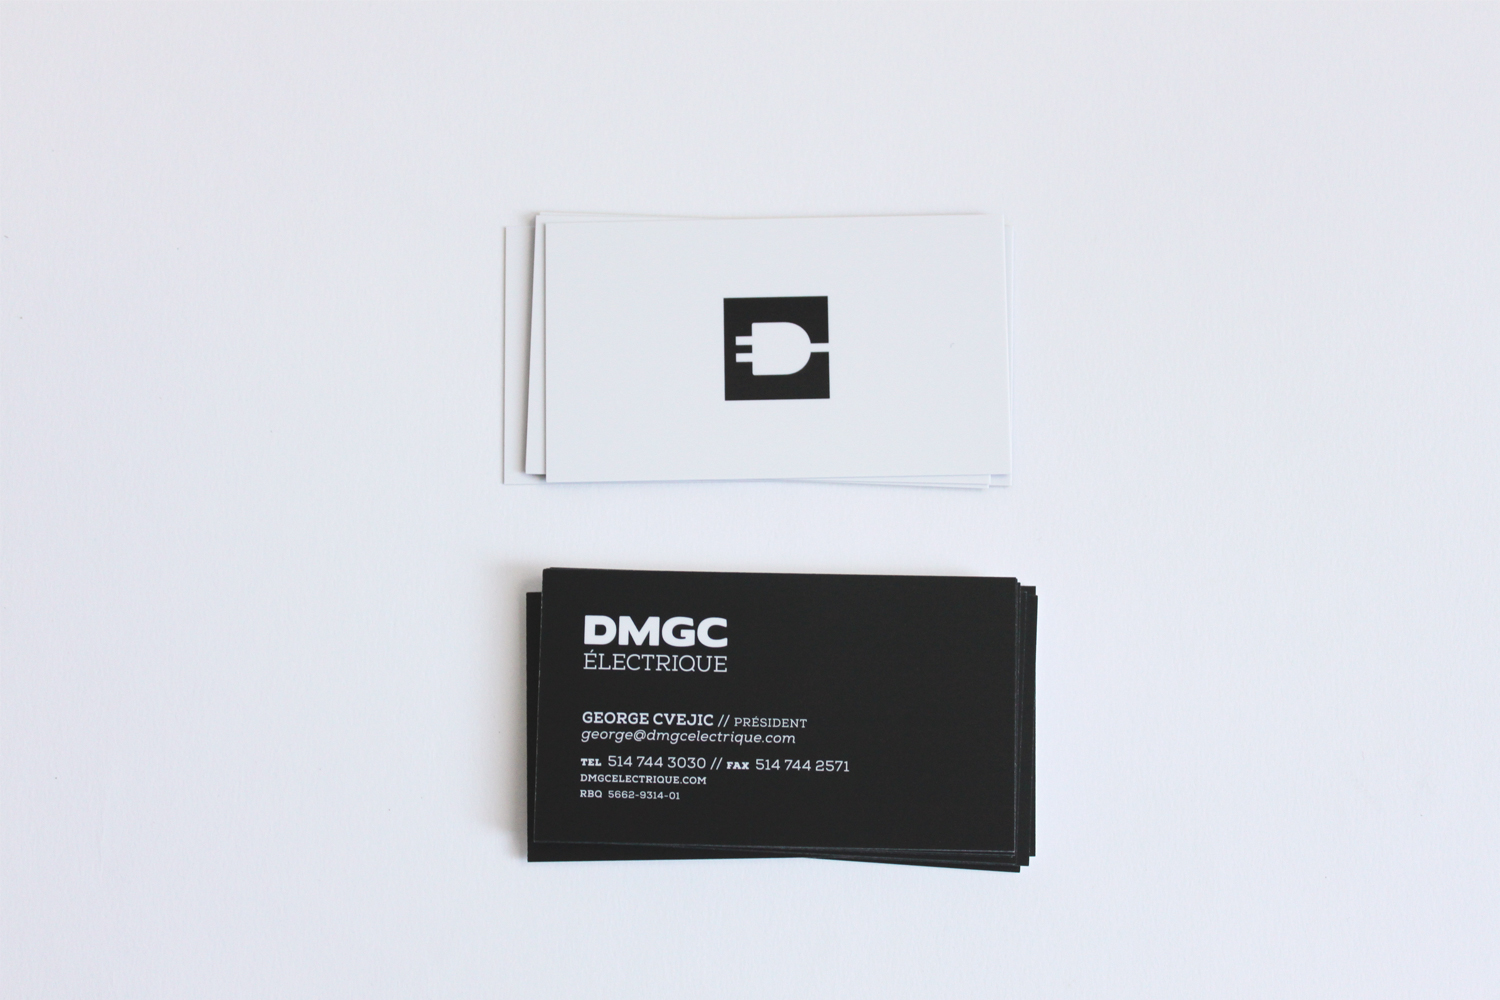 front and back view of dmgc electrique's business card design, black and white, simple, spot uv with logo only, overhead view, print design, branding